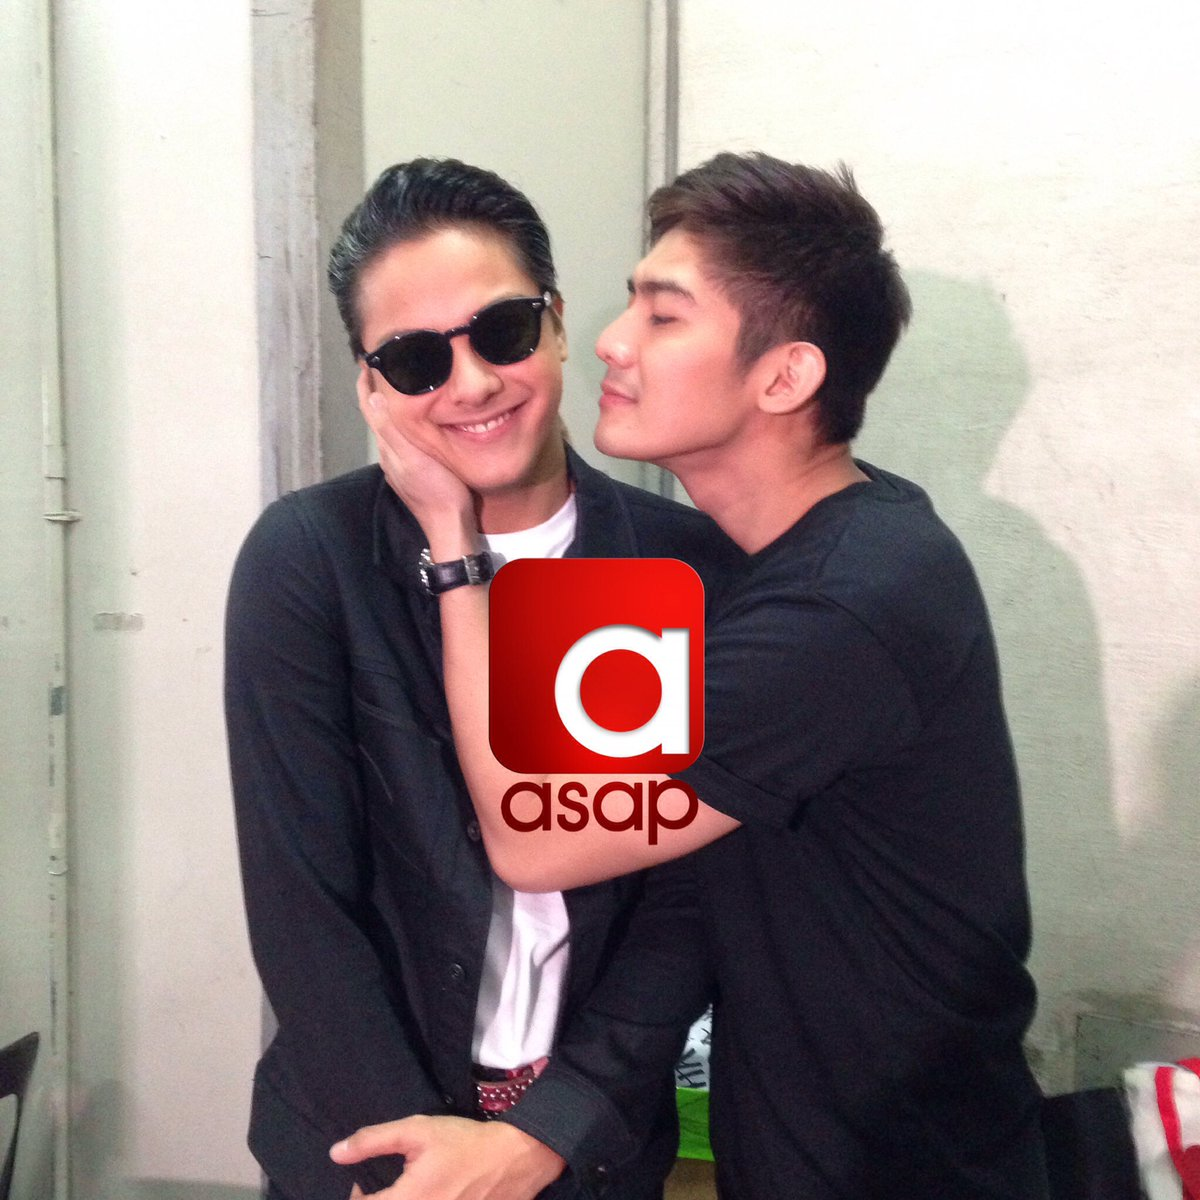 Unstoppable backstage kulitan ng mag bros, Daniel and Robi! 😄😂🎉 #ASAPBigBlowout